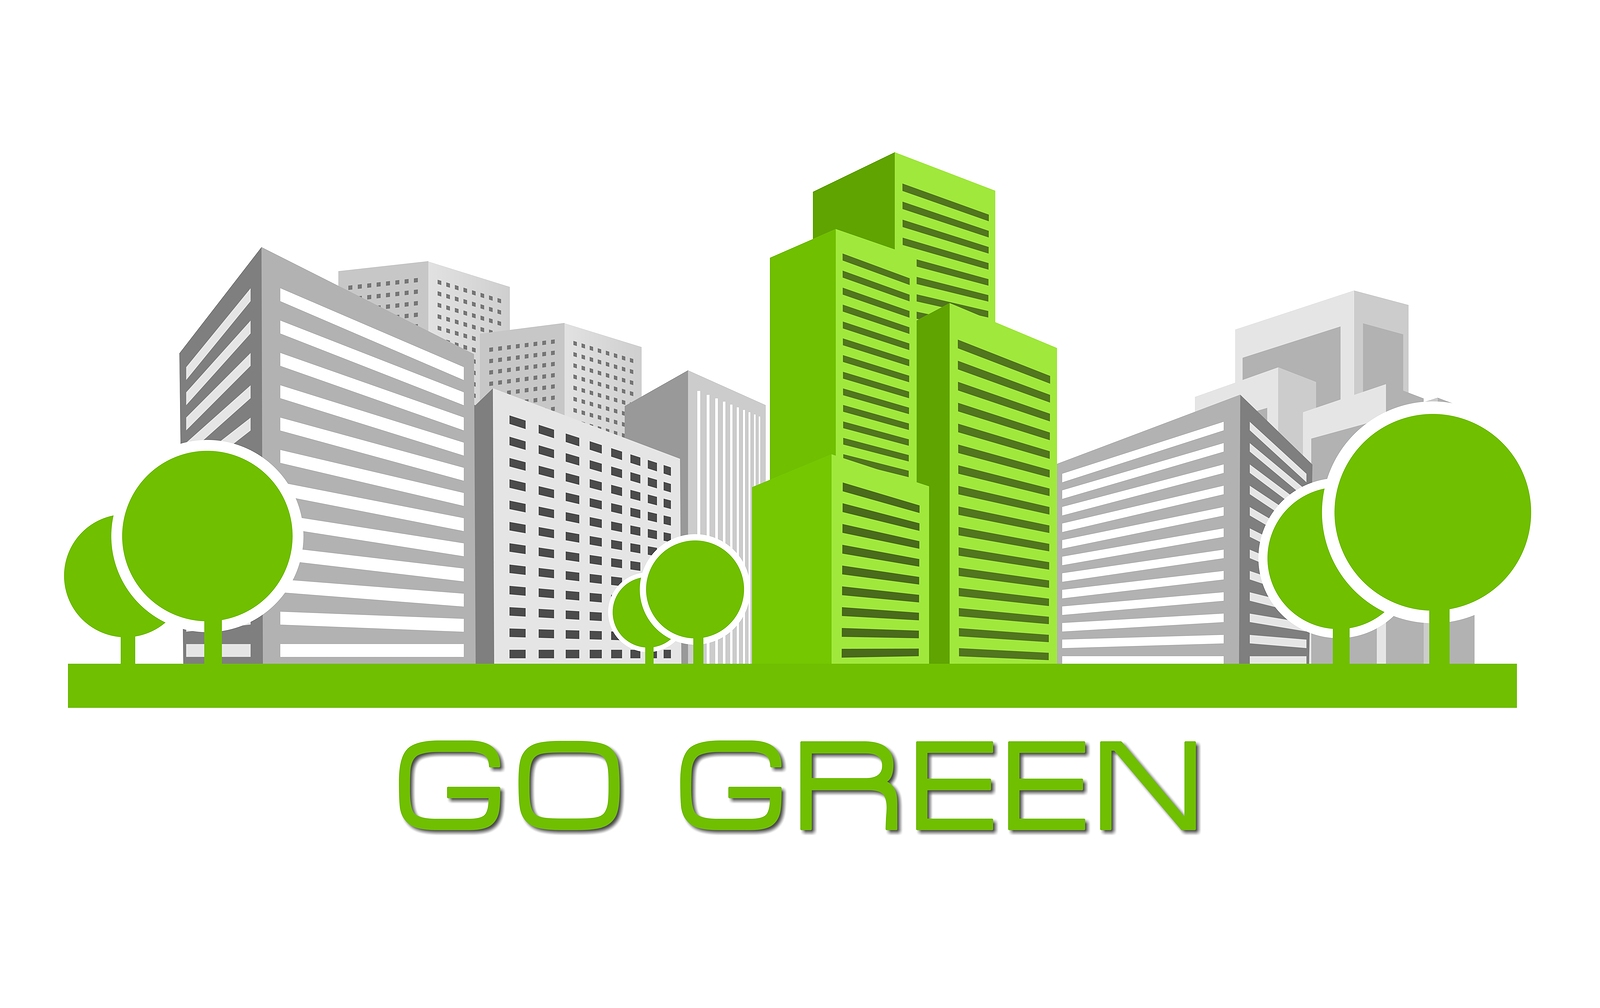 Go green building for Jean-Luc Andriot blog 042018